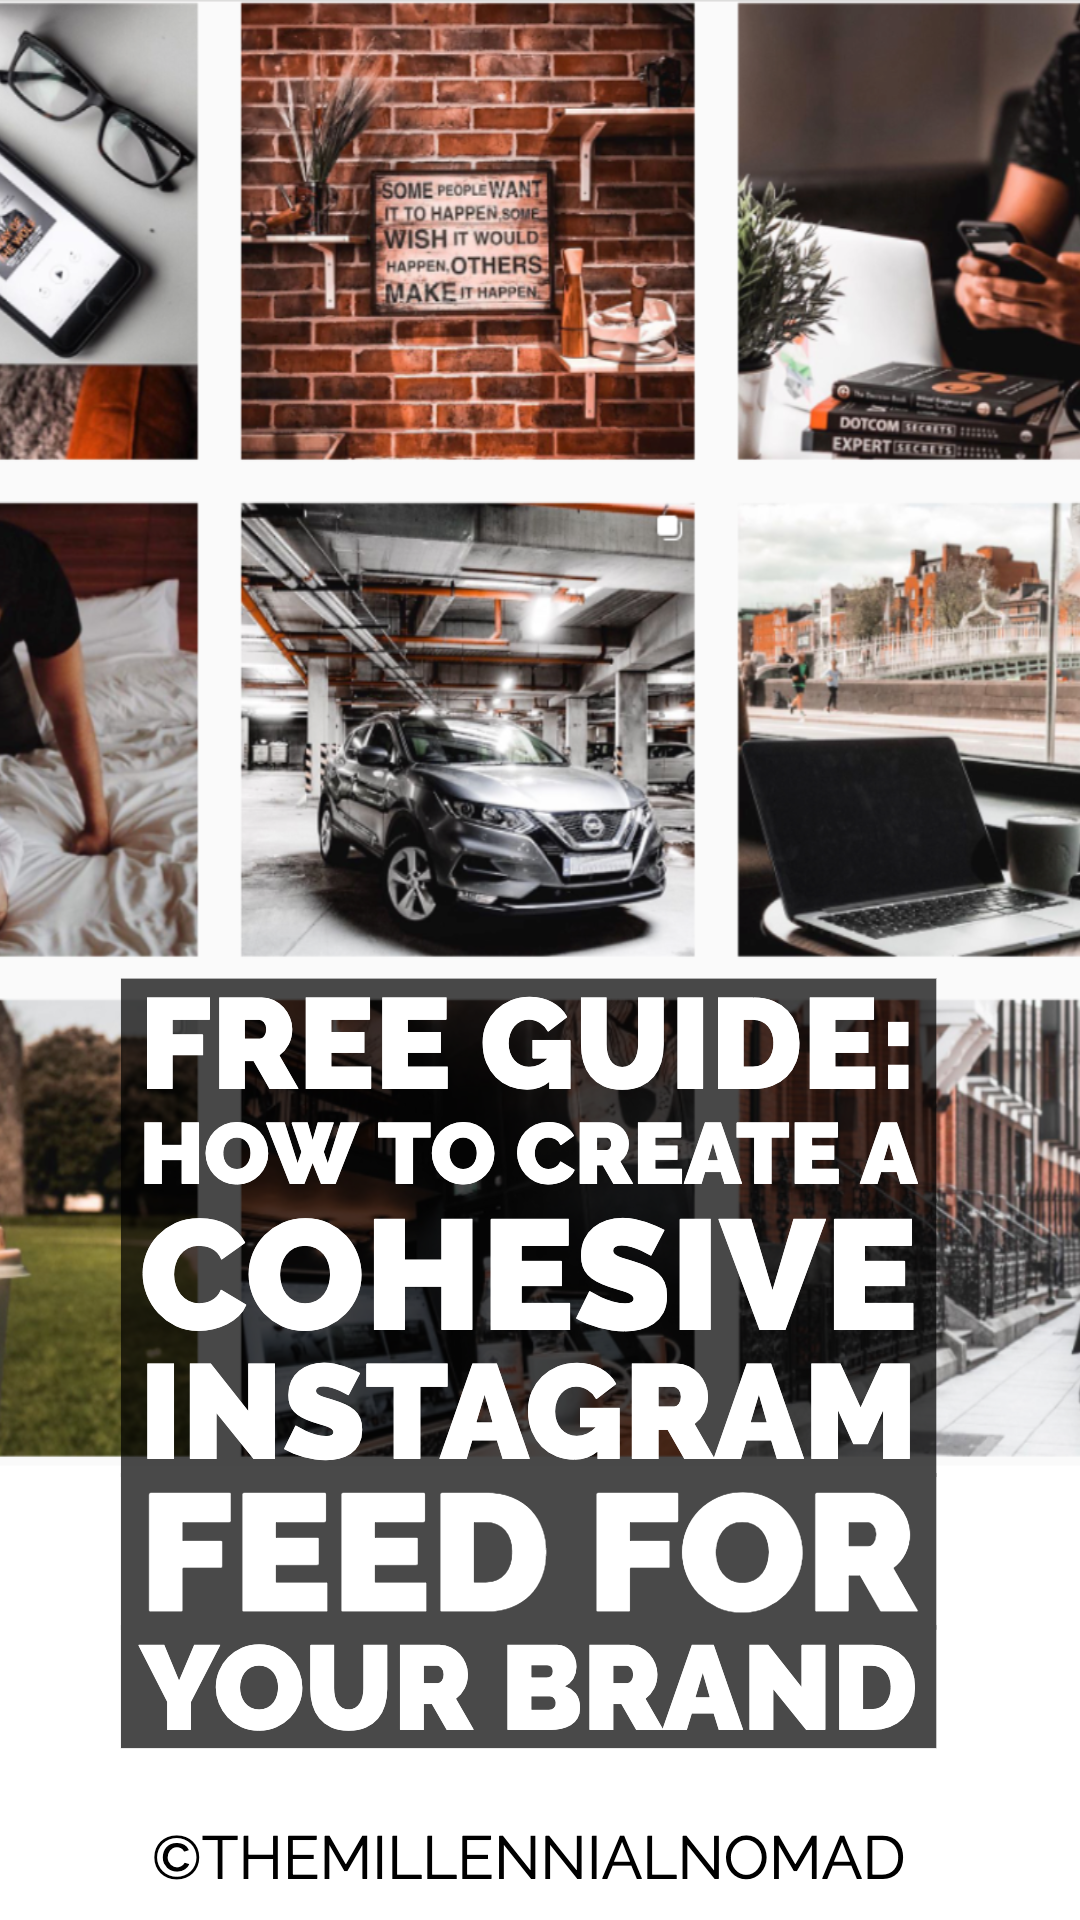 Learn my 5 step process to creating a cohesive instagram feed for your brand on Instagram. #instagrammarketing #instagramforbusiness #contentmarketing #instagramfeed #instagramtips #smallbusiness #influencer